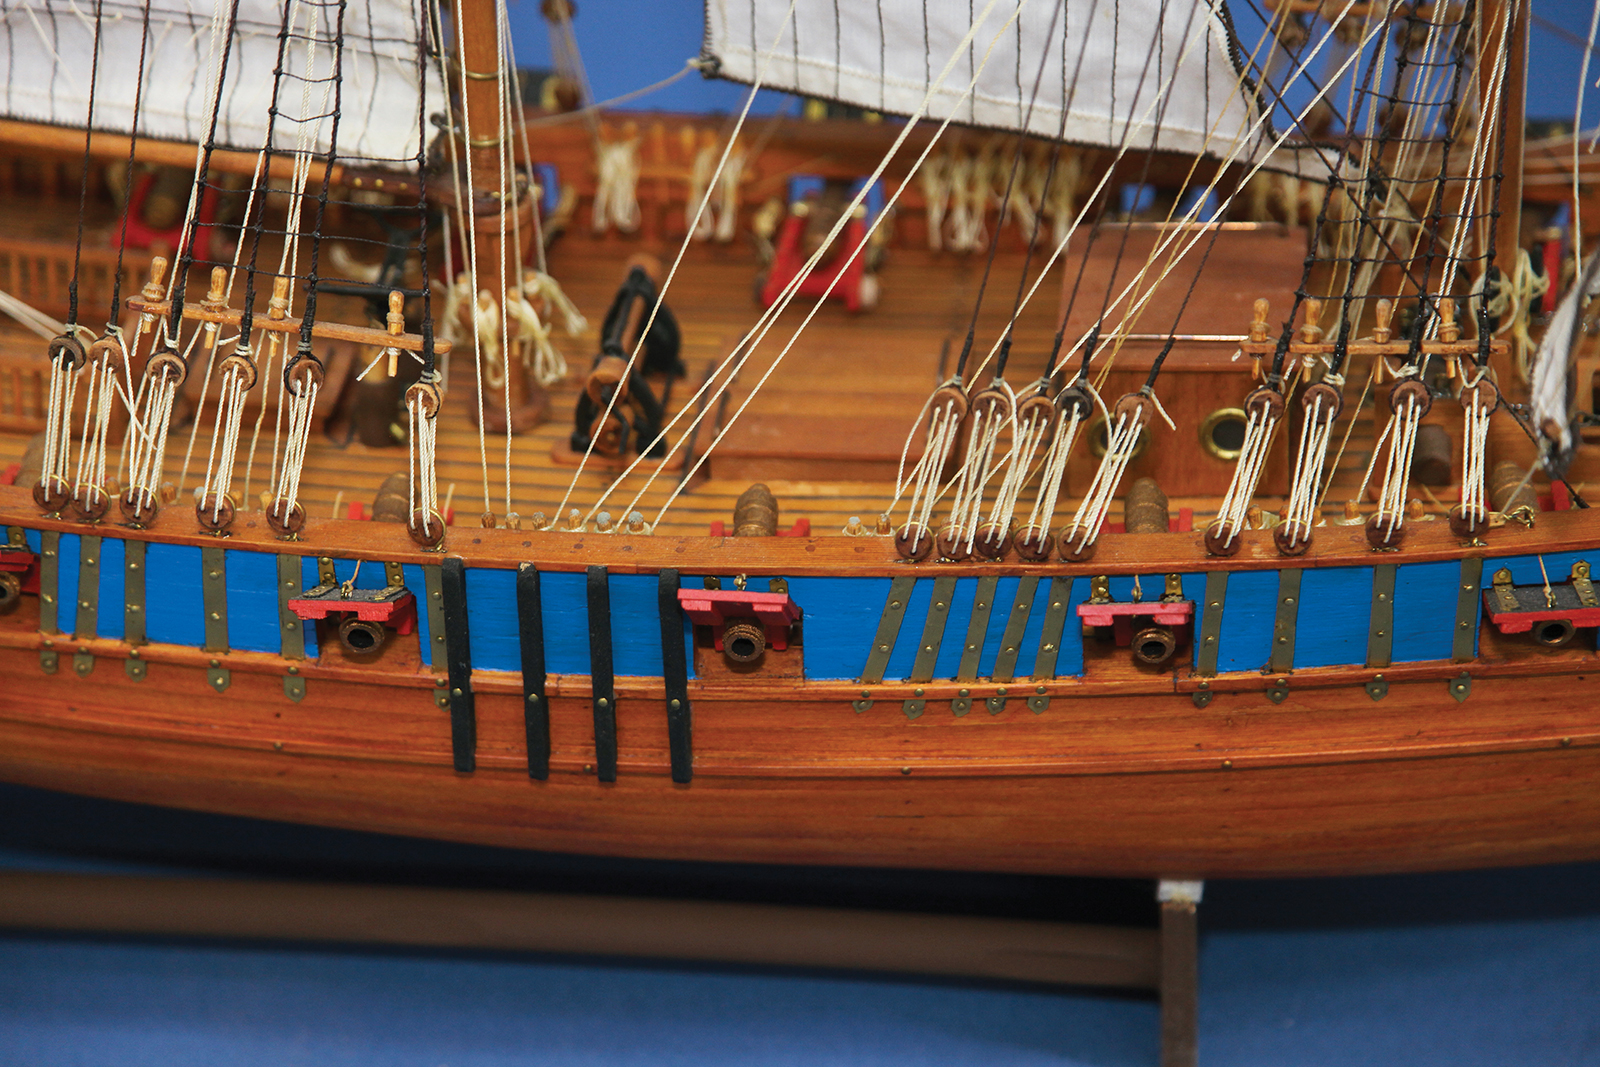 Voyage, Seafaring and Shipbuilding in Greece from Antiquity to Modern Times